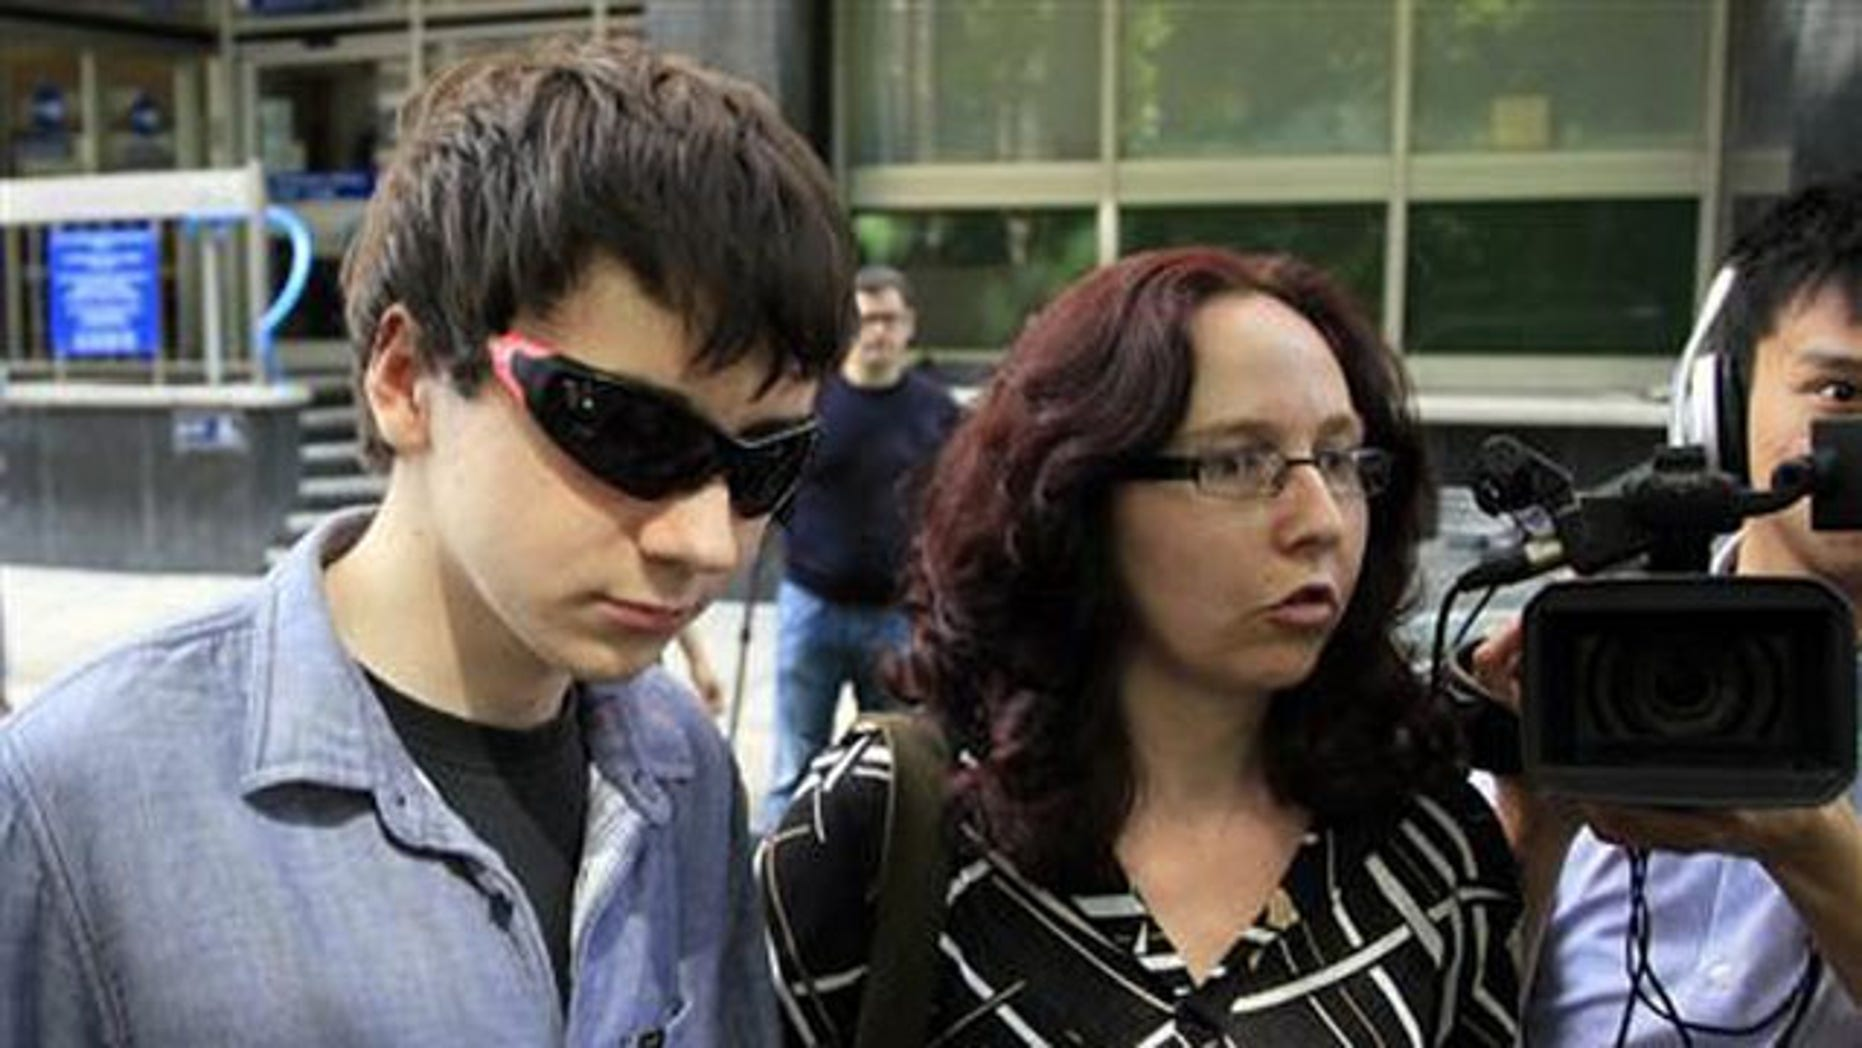 August 1, 2011: Suspected British computer hacker Jake Davis (L) leaves City of Westminster Magistrates' Court in London after being released on bail.